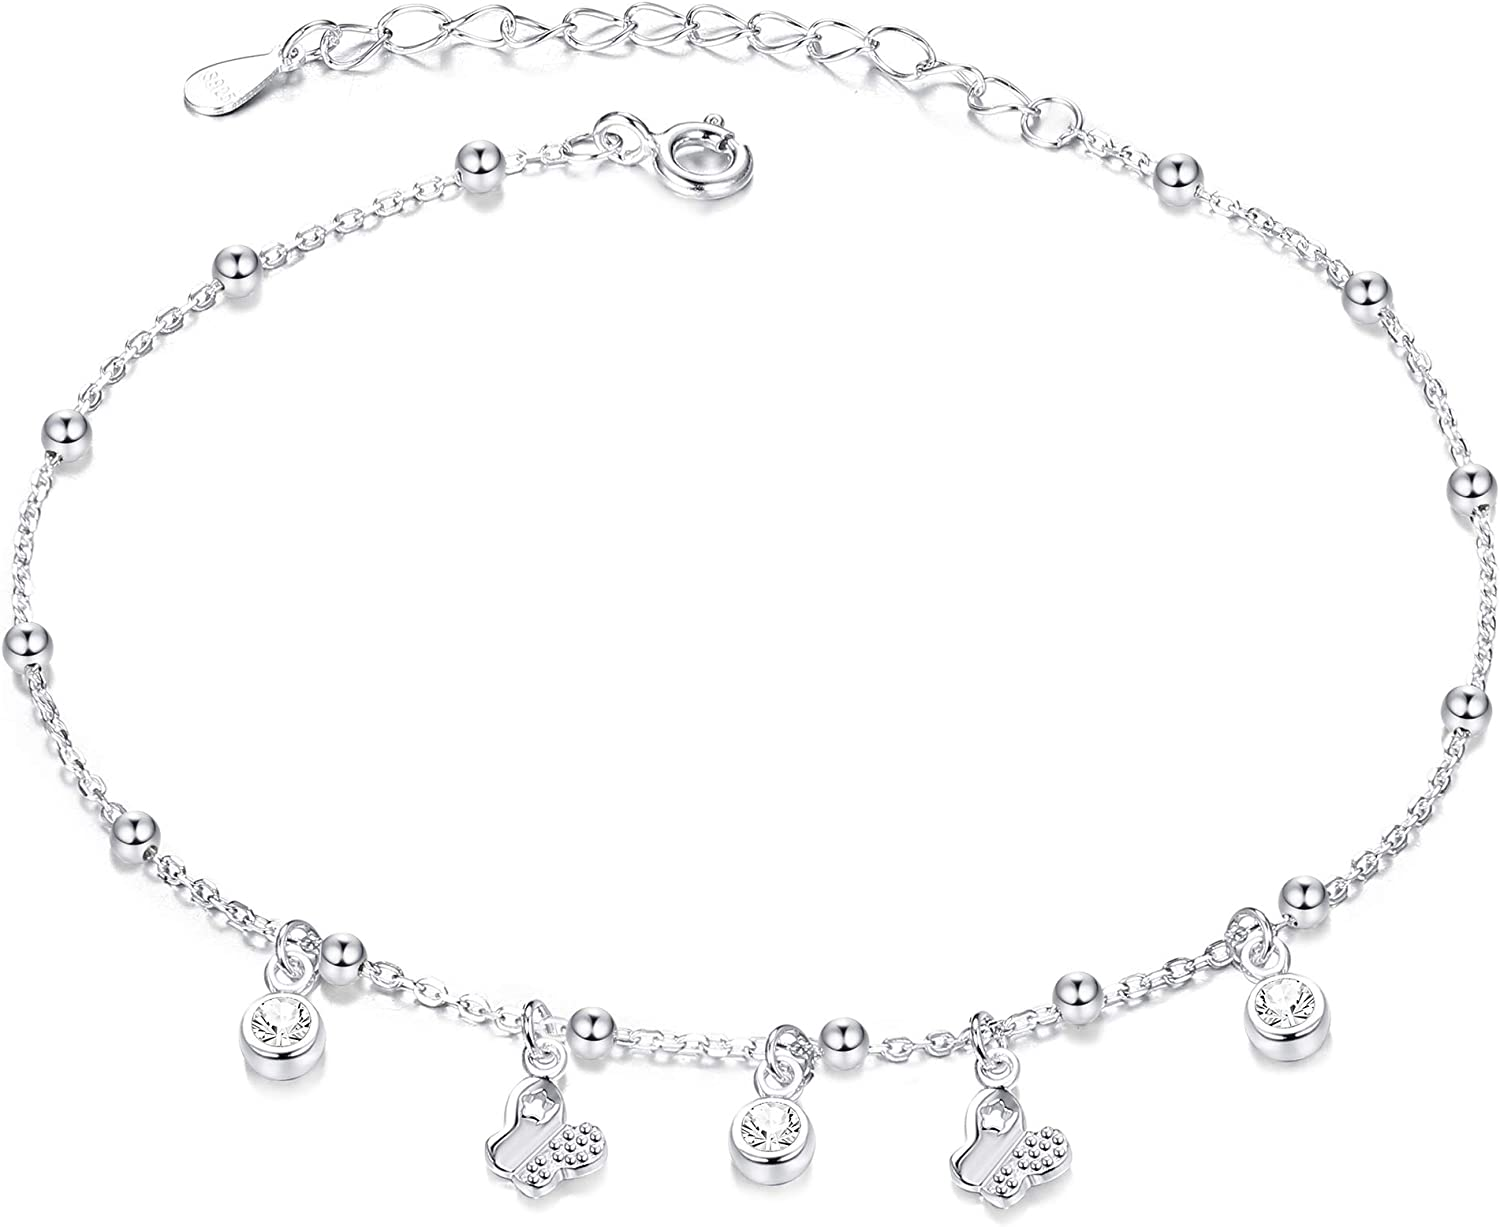 Sllaiss 925 Sterling Silver Dainty Butterfly Beach Anklet for Women Cute CZ Anklet Summer Beach Foot Ankle Bracelet Adjustable White Gold Plated Tiny Bead Chain Anklet